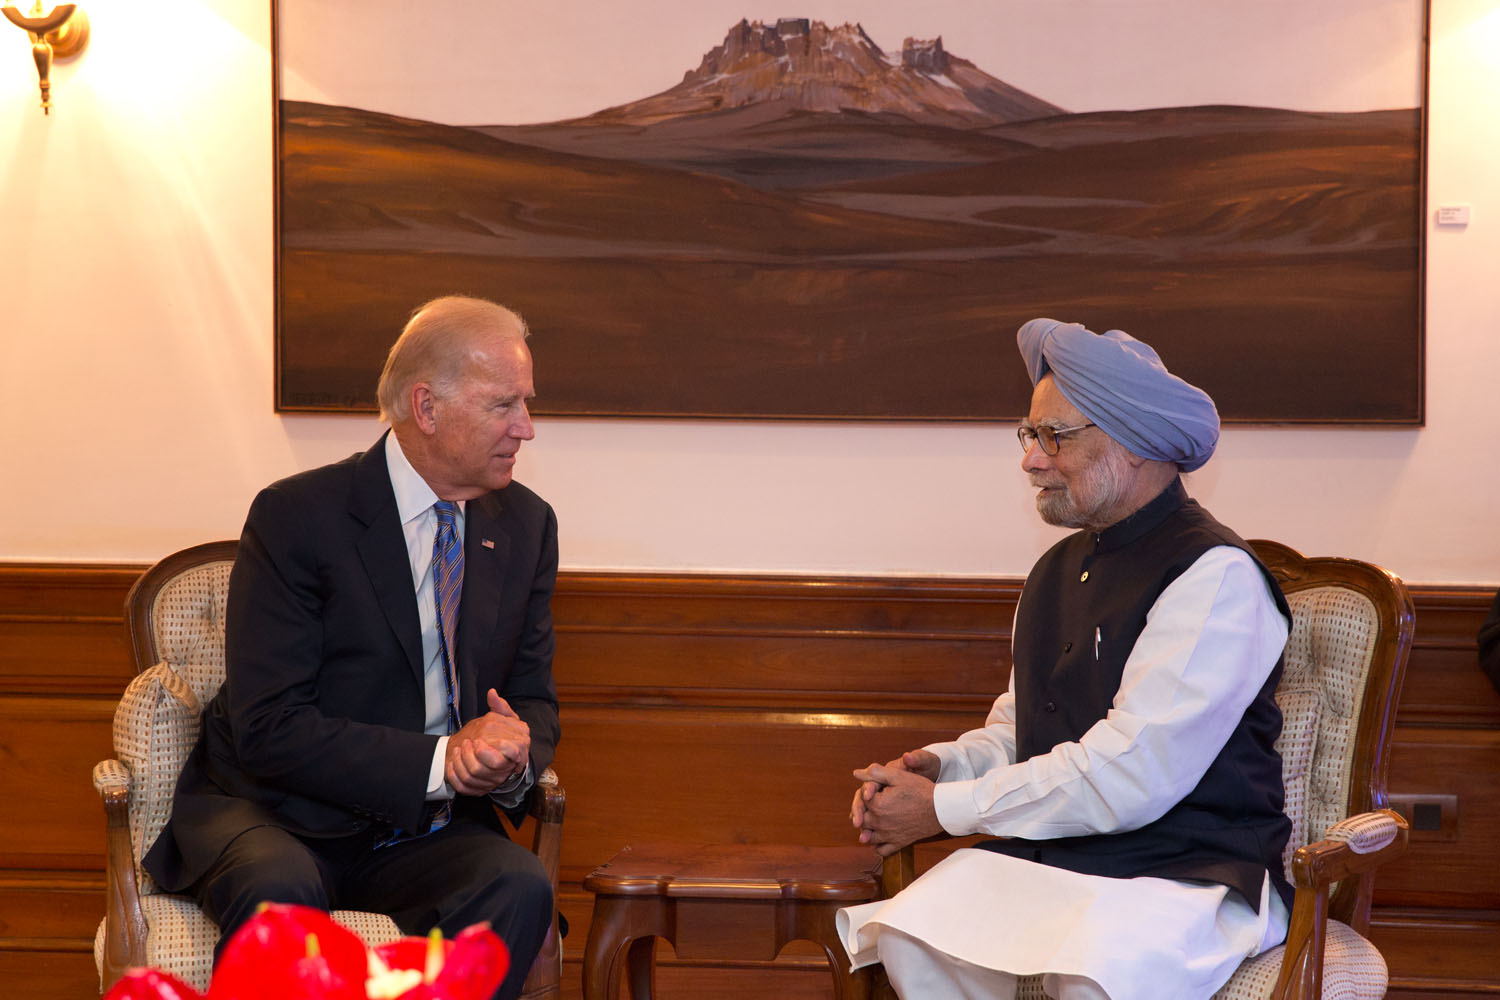 Vice President Joe Biden meets with Indian Prime Minister Dr. Manmohan Singh